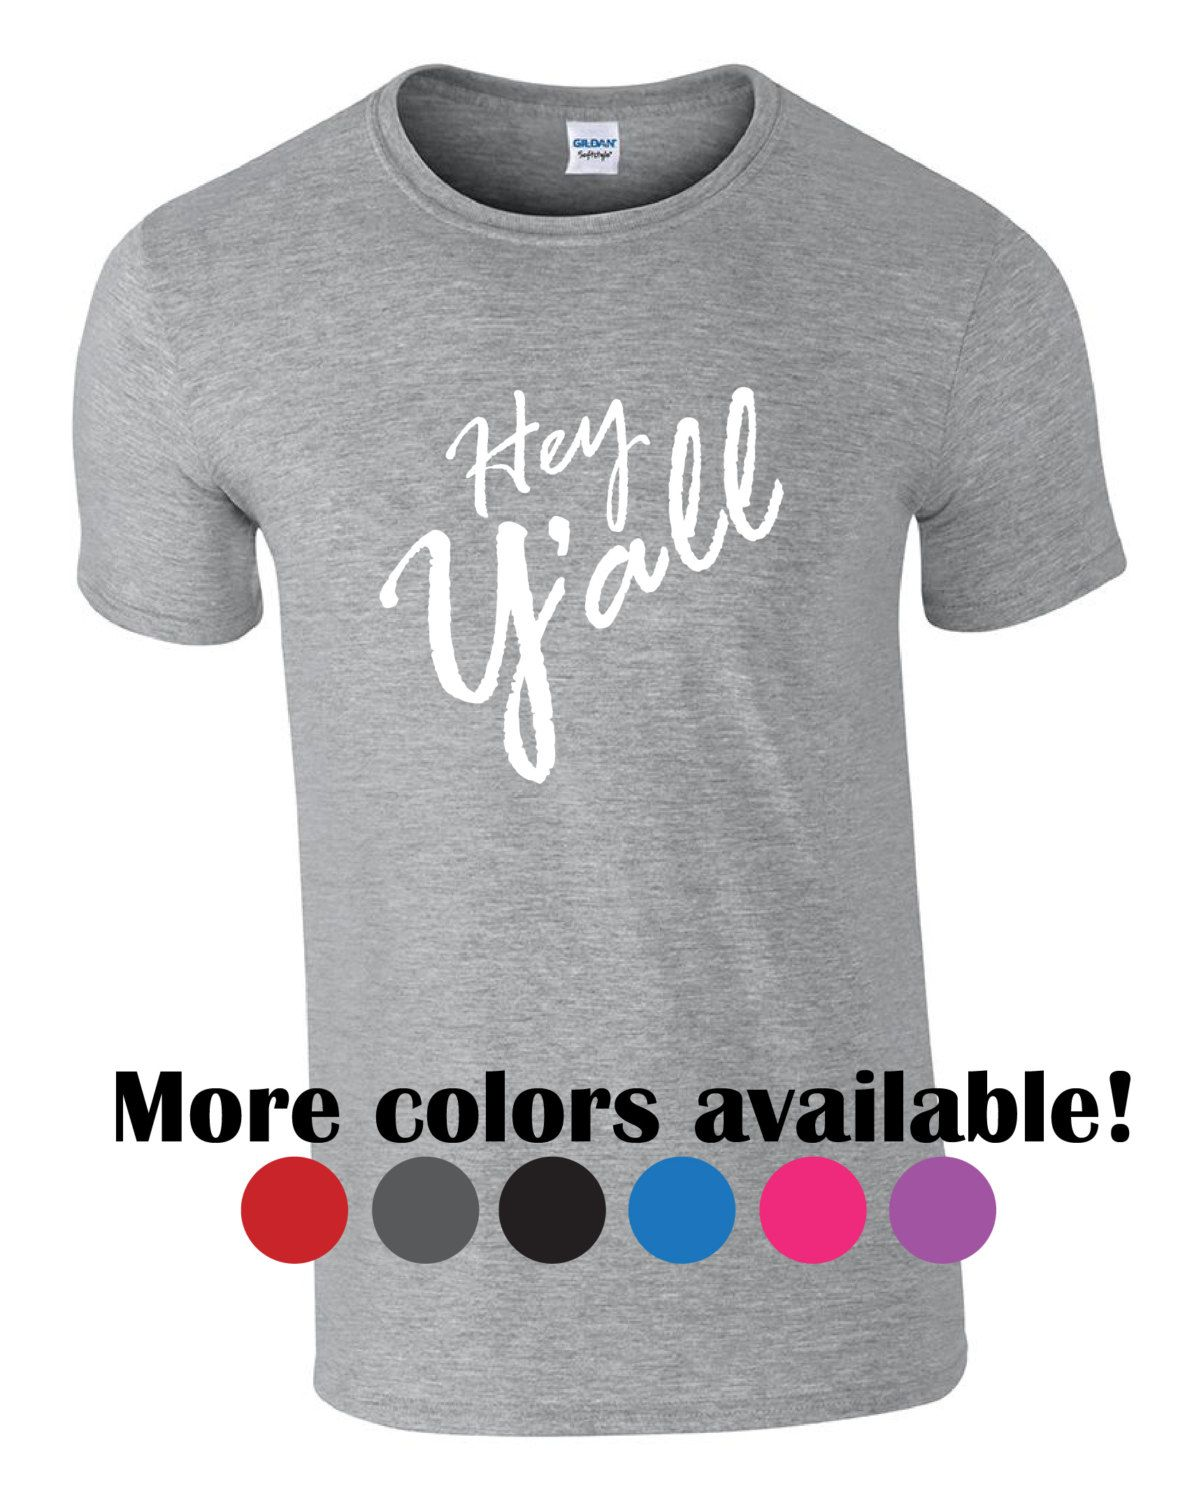 Funny tshirt.  Hey y'all.  Southern charm shirt.  Fast shipping!  Y'all tshirt.  Funny shirt.  Proud  southerner.  Y'all tee. Gift idea by PinkPigPrinting on Etsy